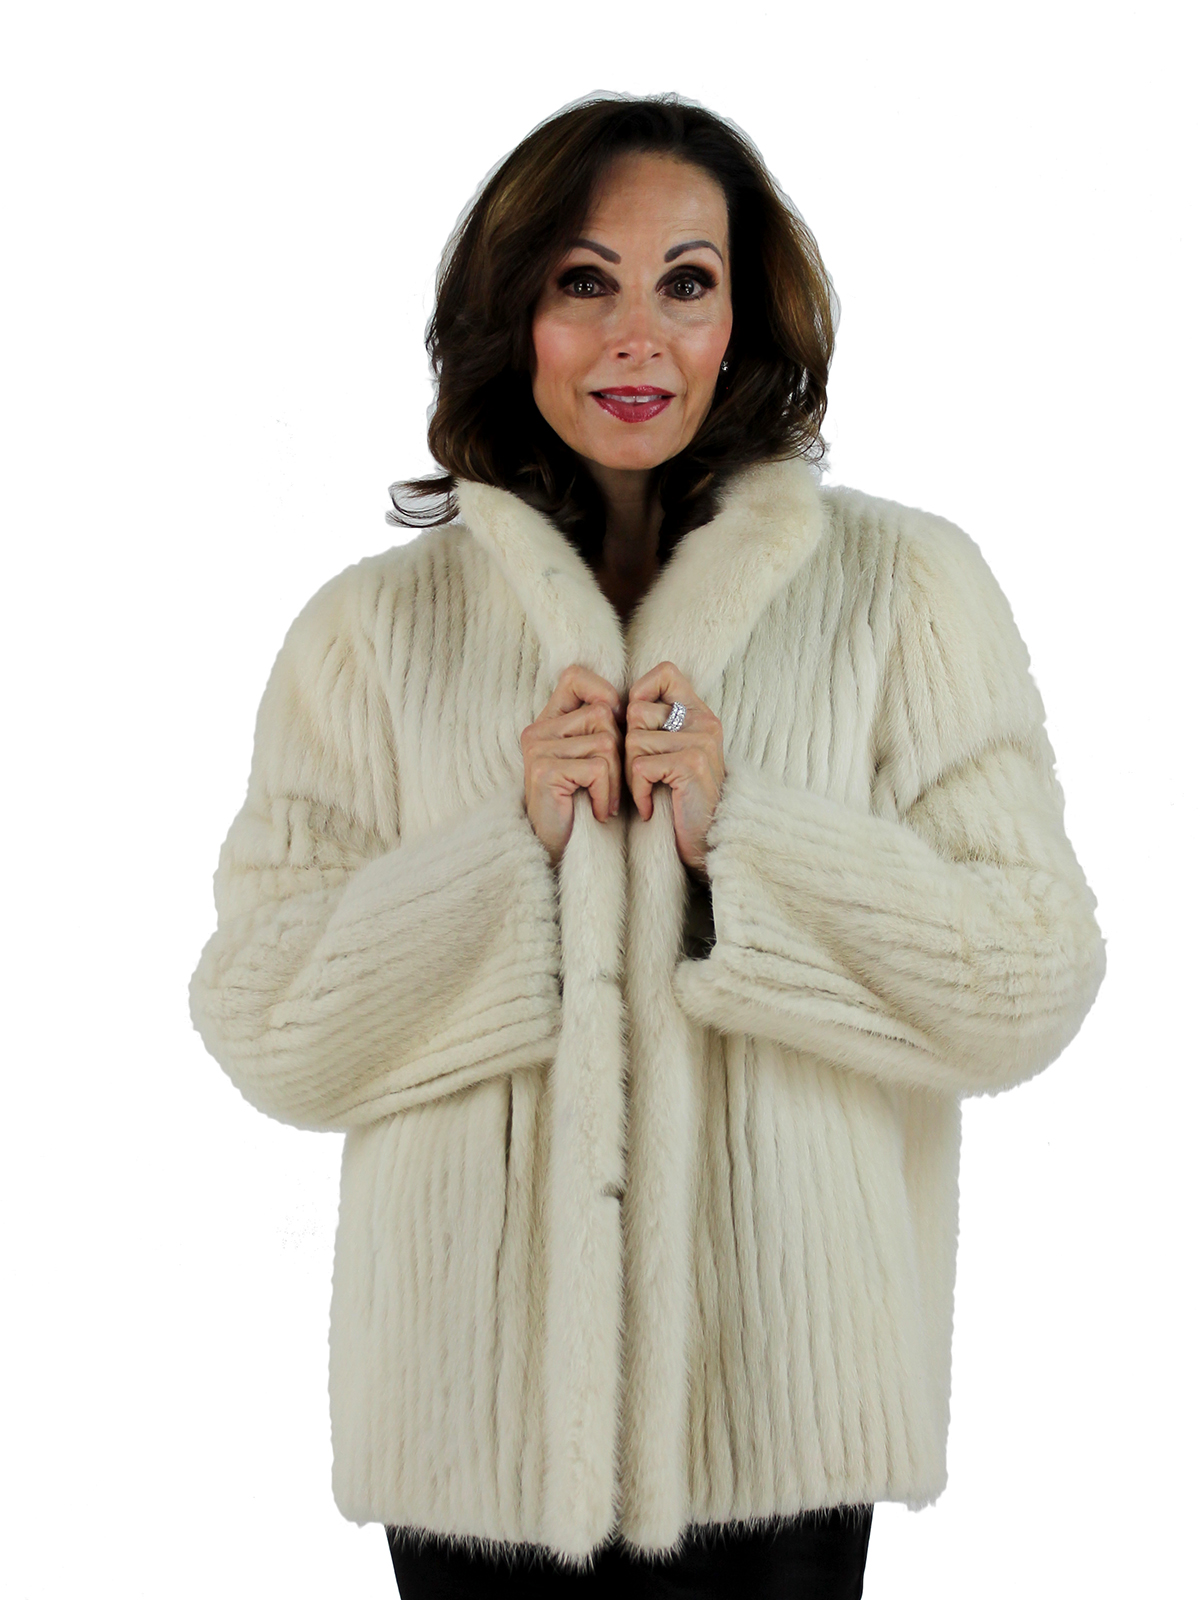 Tourmaline Cord Cut Fur Jacket Women S Large Estate Furs